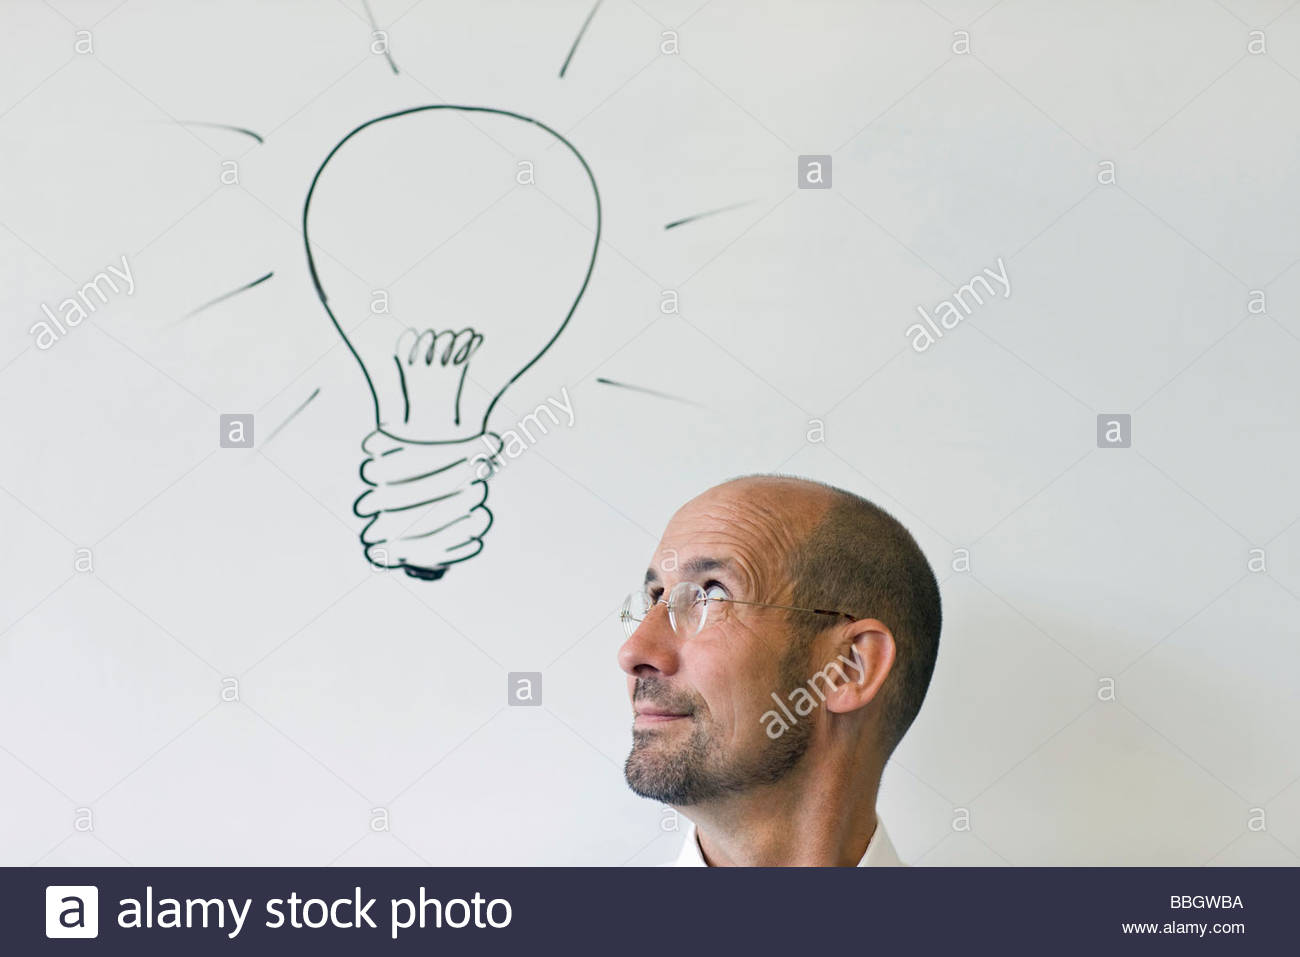 Headshot mature man looking up at line drawing light bulb - Stock Image